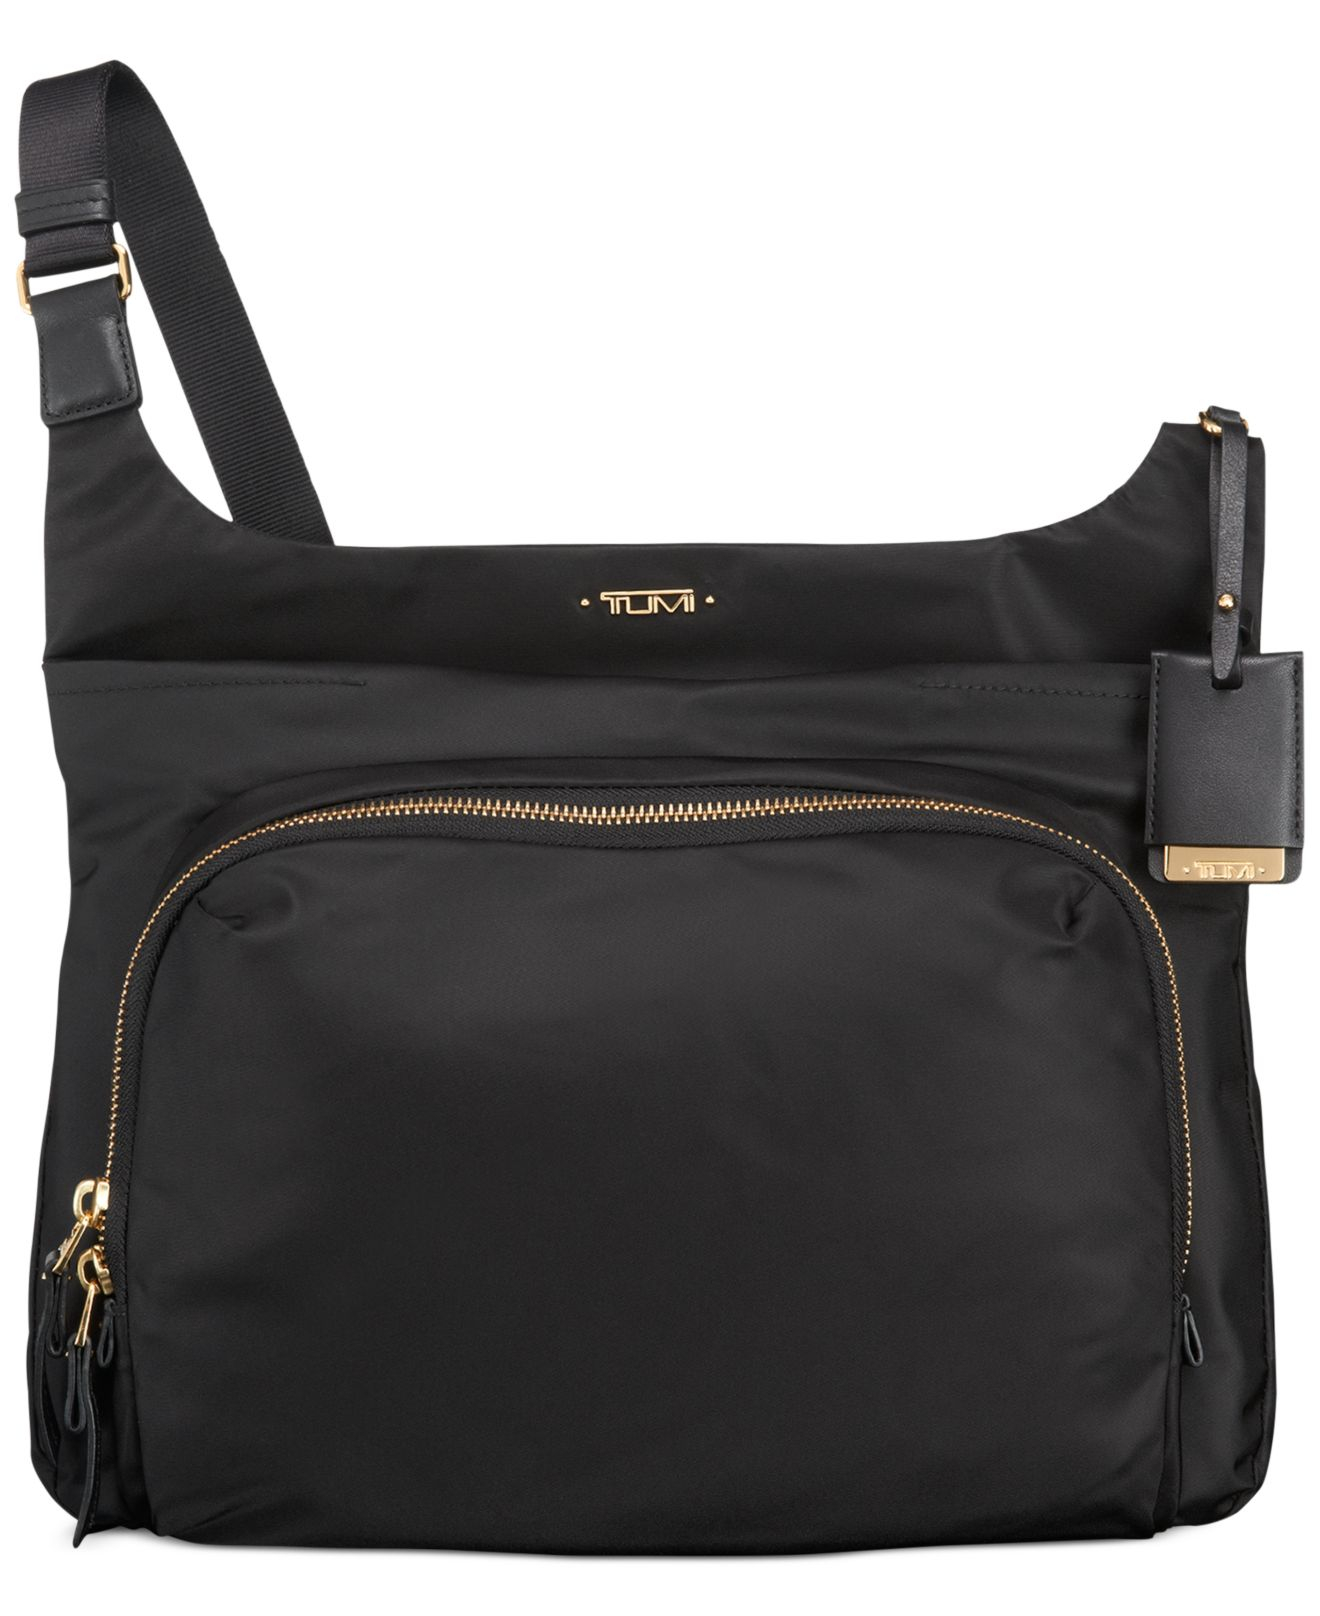 Tumi Luggage Voyageur Sumatra Crossbody Bag 15